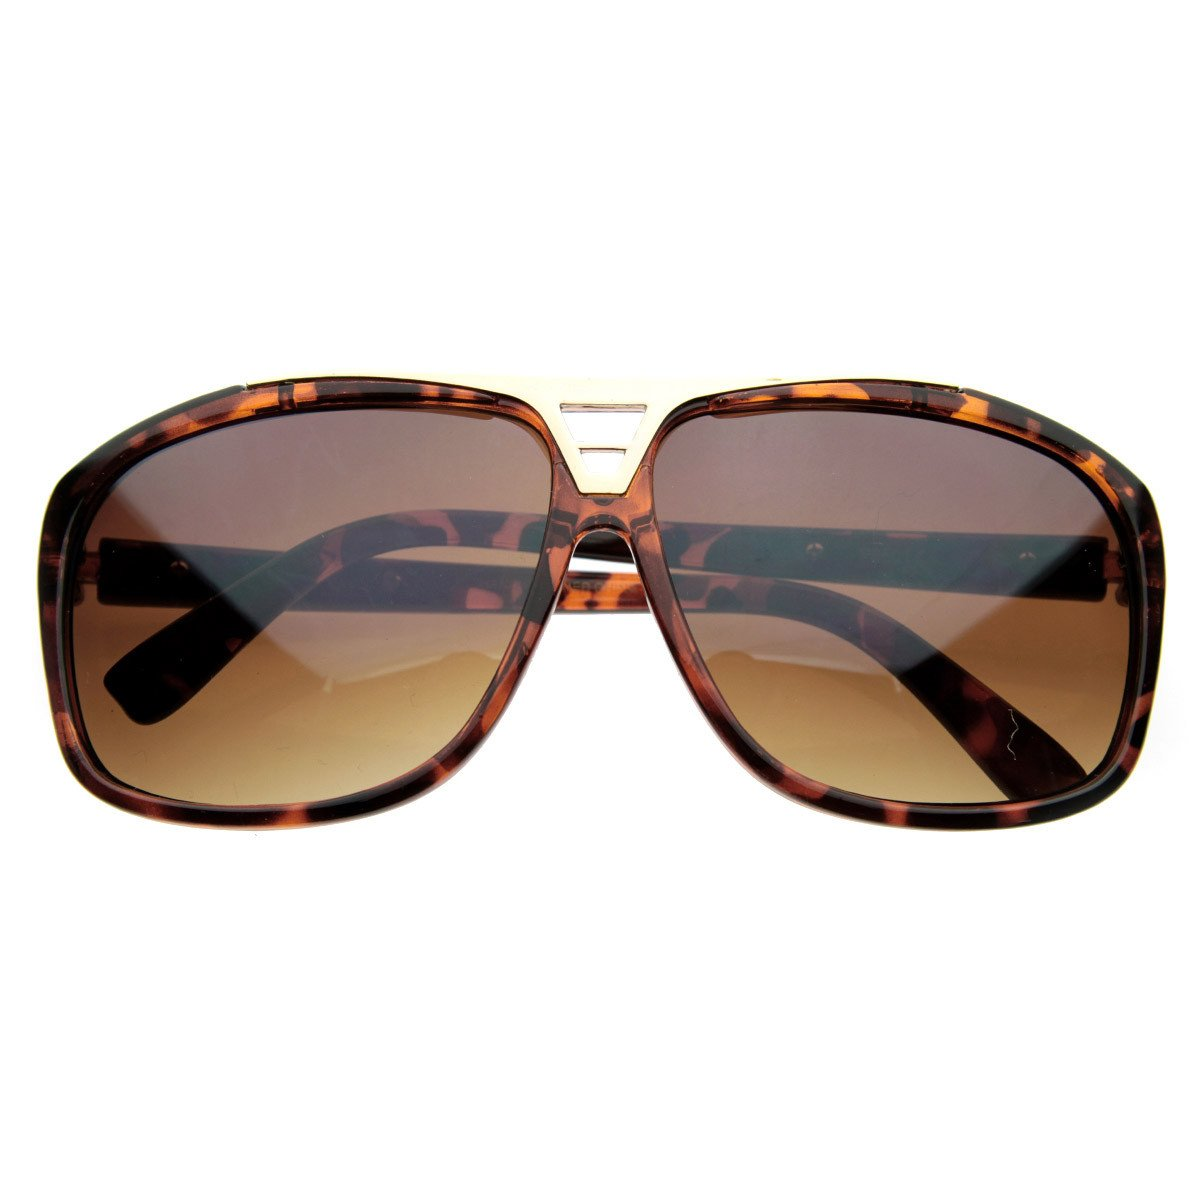 b22f102eede3 Designer Fashion Square Flat Top Aviator Sunglasses - zeroUV